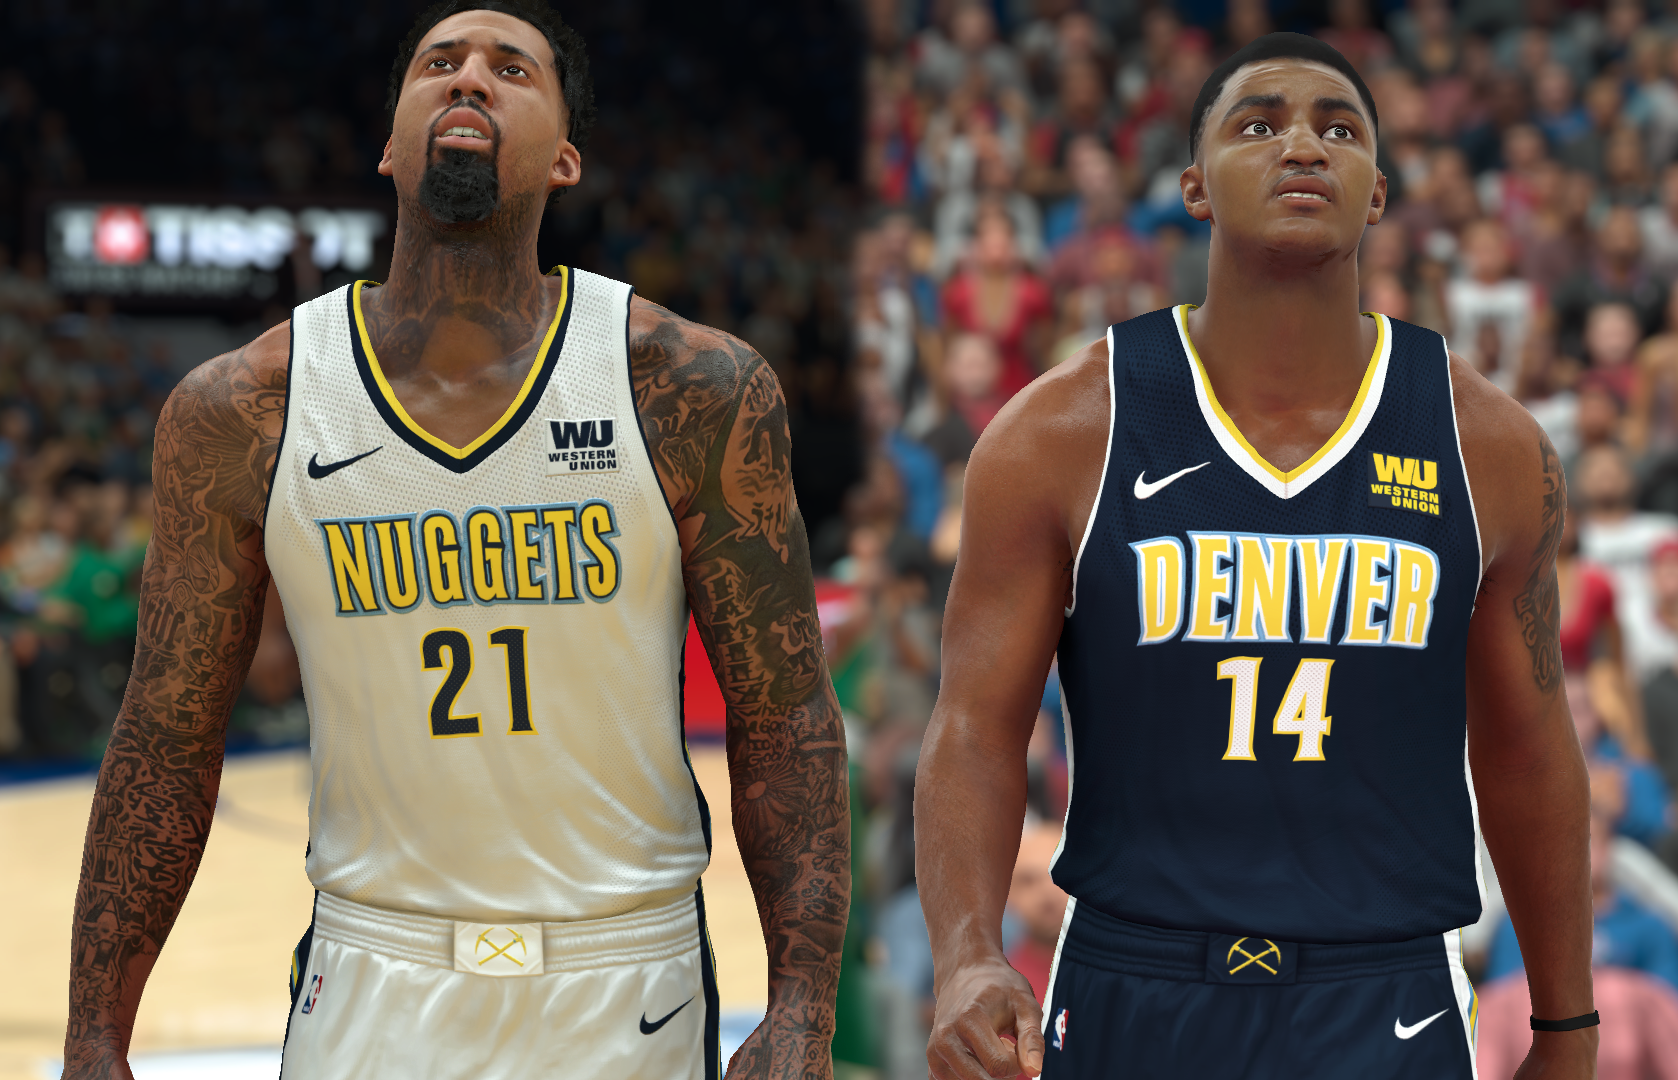 Denver Nuggets Jersey 2017-18 (pinoy21)